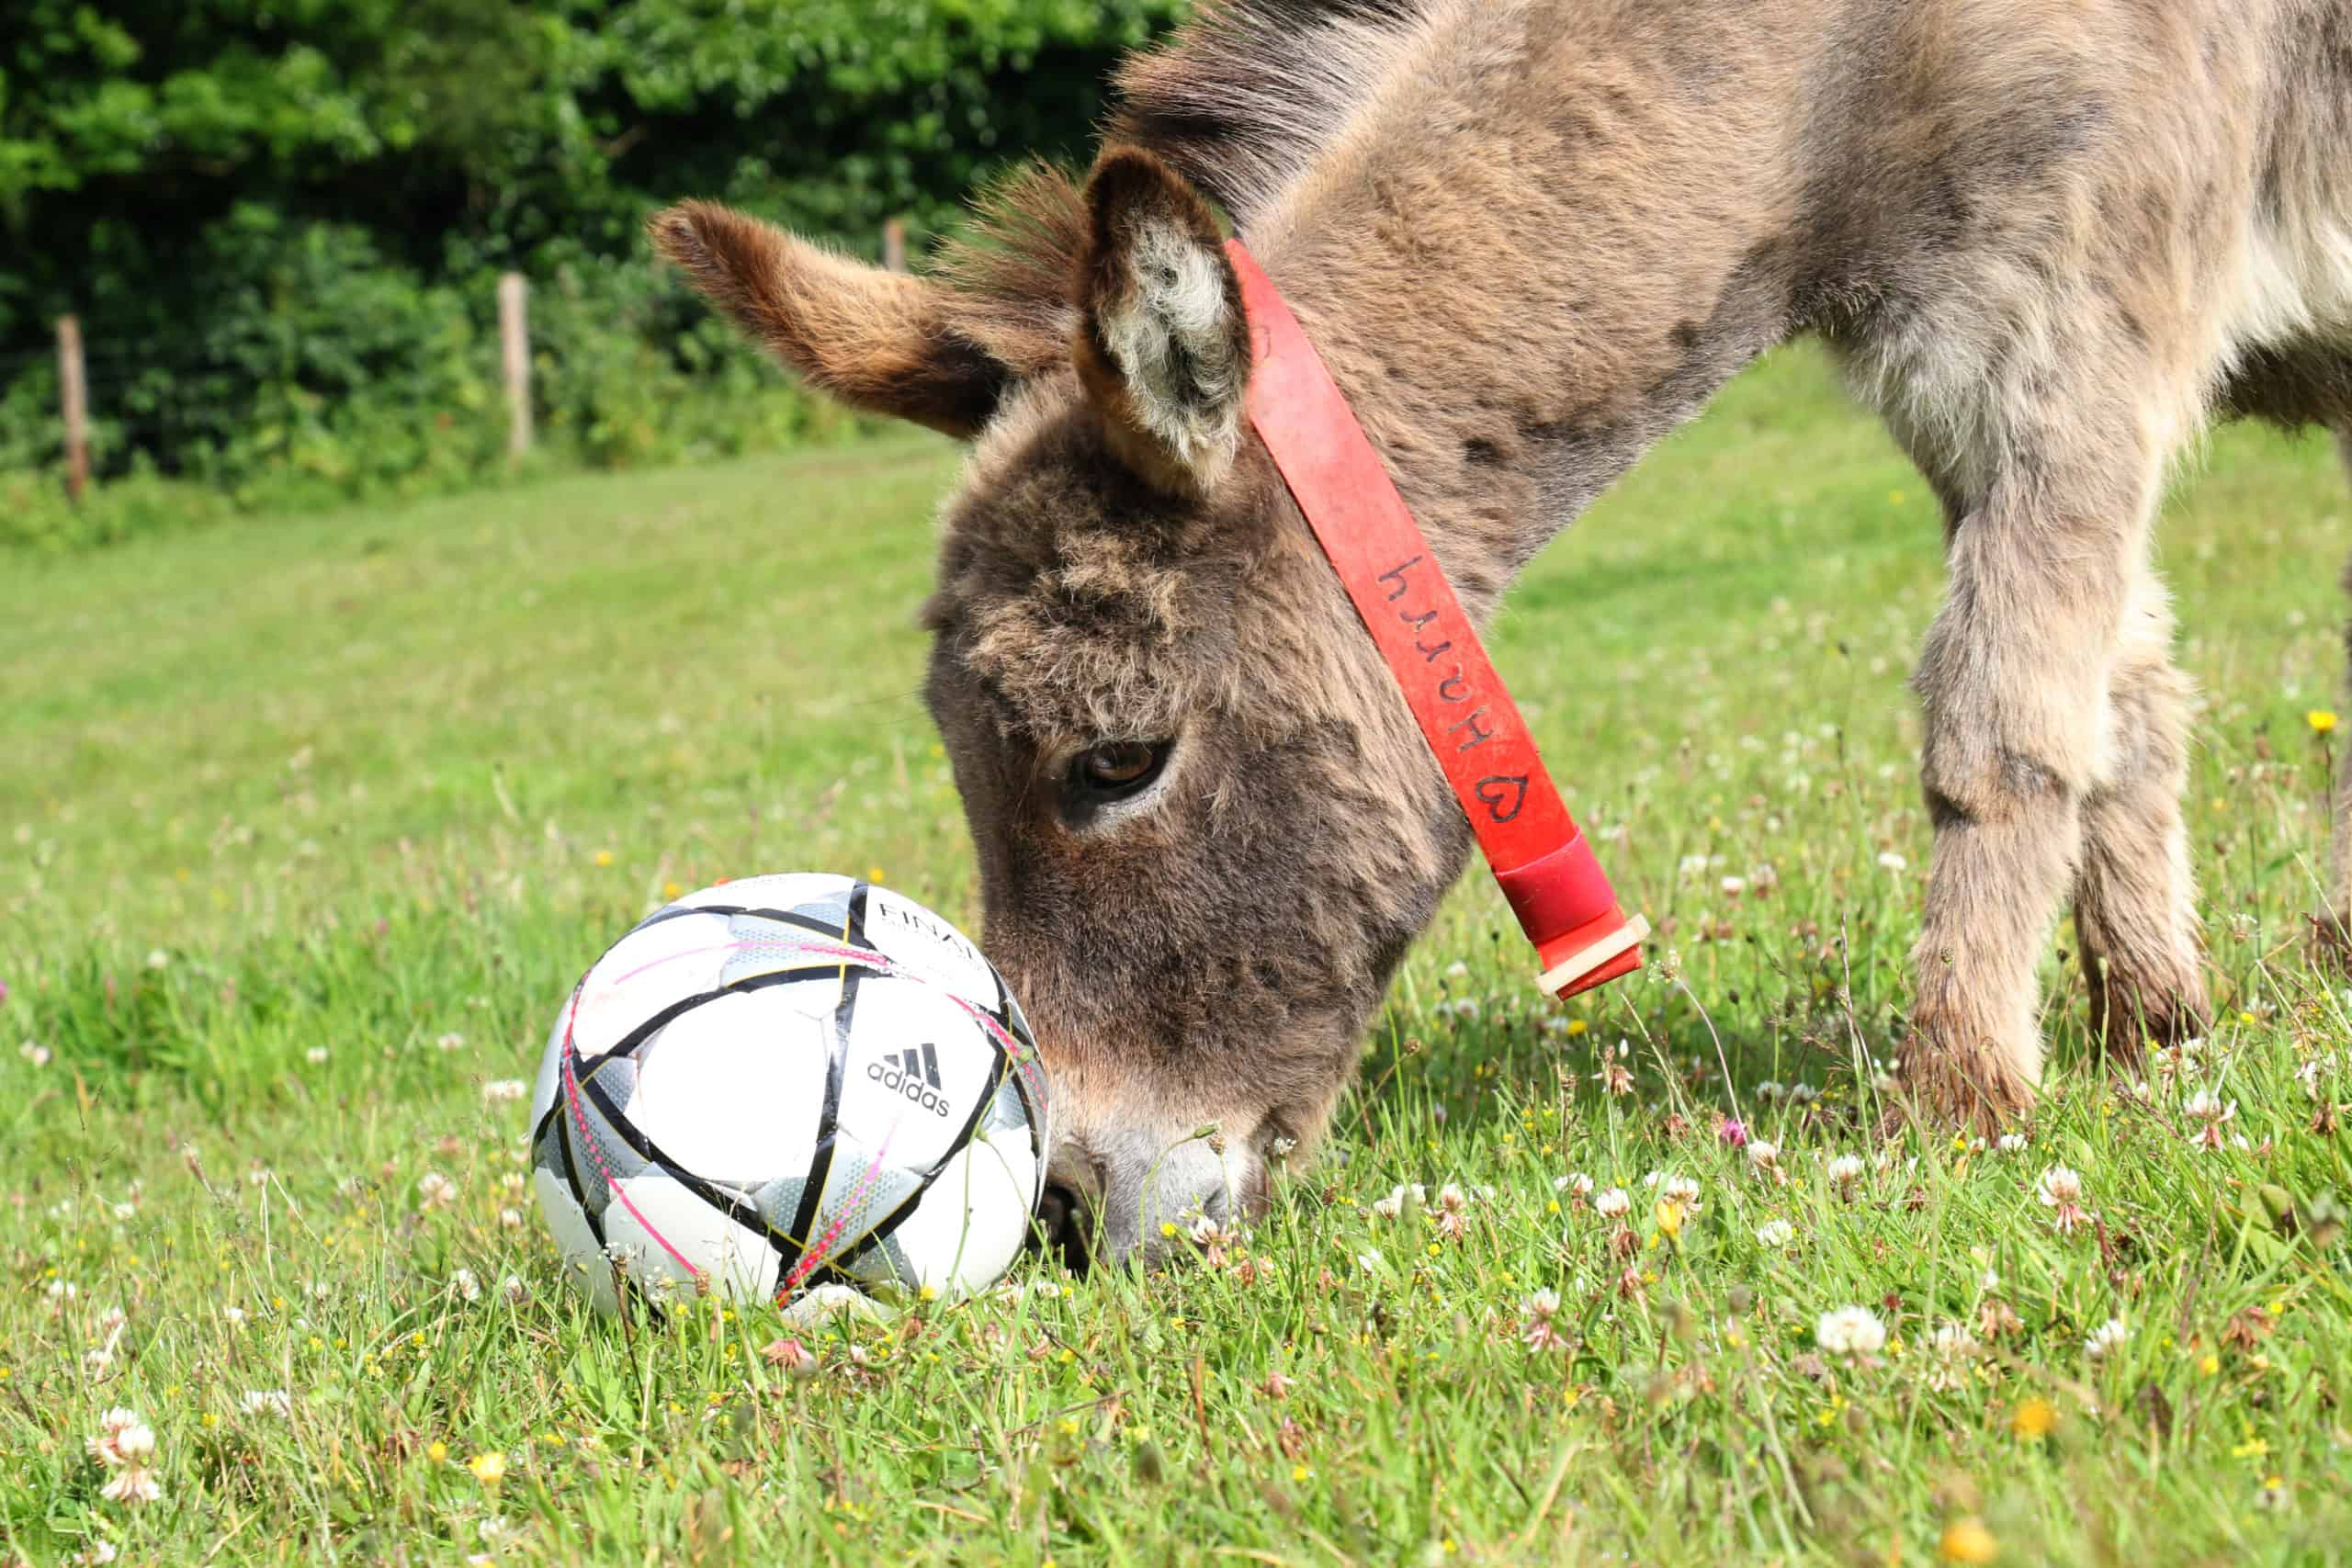 Even donkeys are moving into the soccer spirit  Even donkeys are moving into the soccer spirit Harry the donkey at The Donkey Sanctuary ii Credit The Donkey Sanctuary scaled